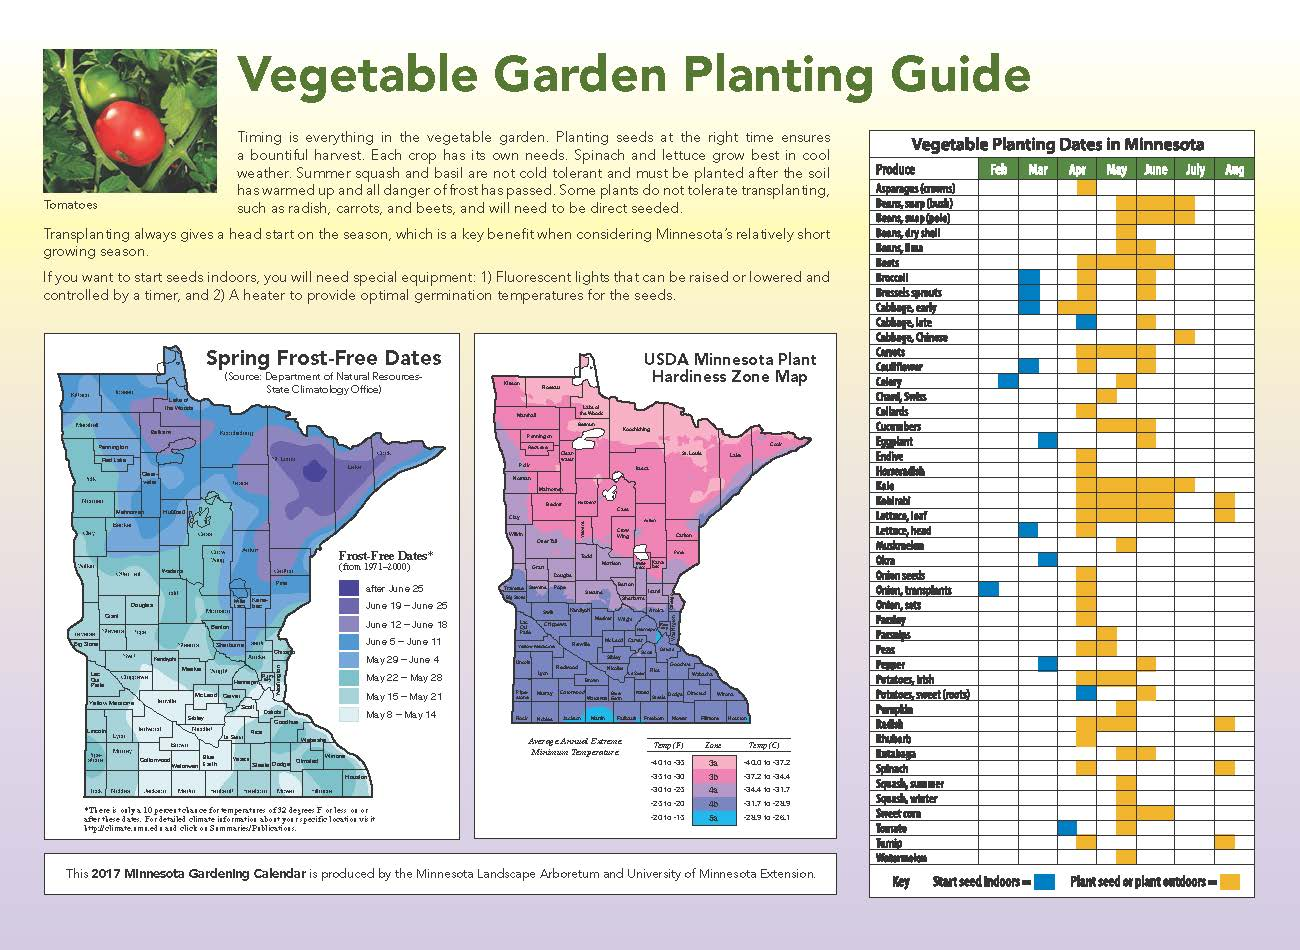 2017 Minnesota Gardening Calendar available Yard and Garden News